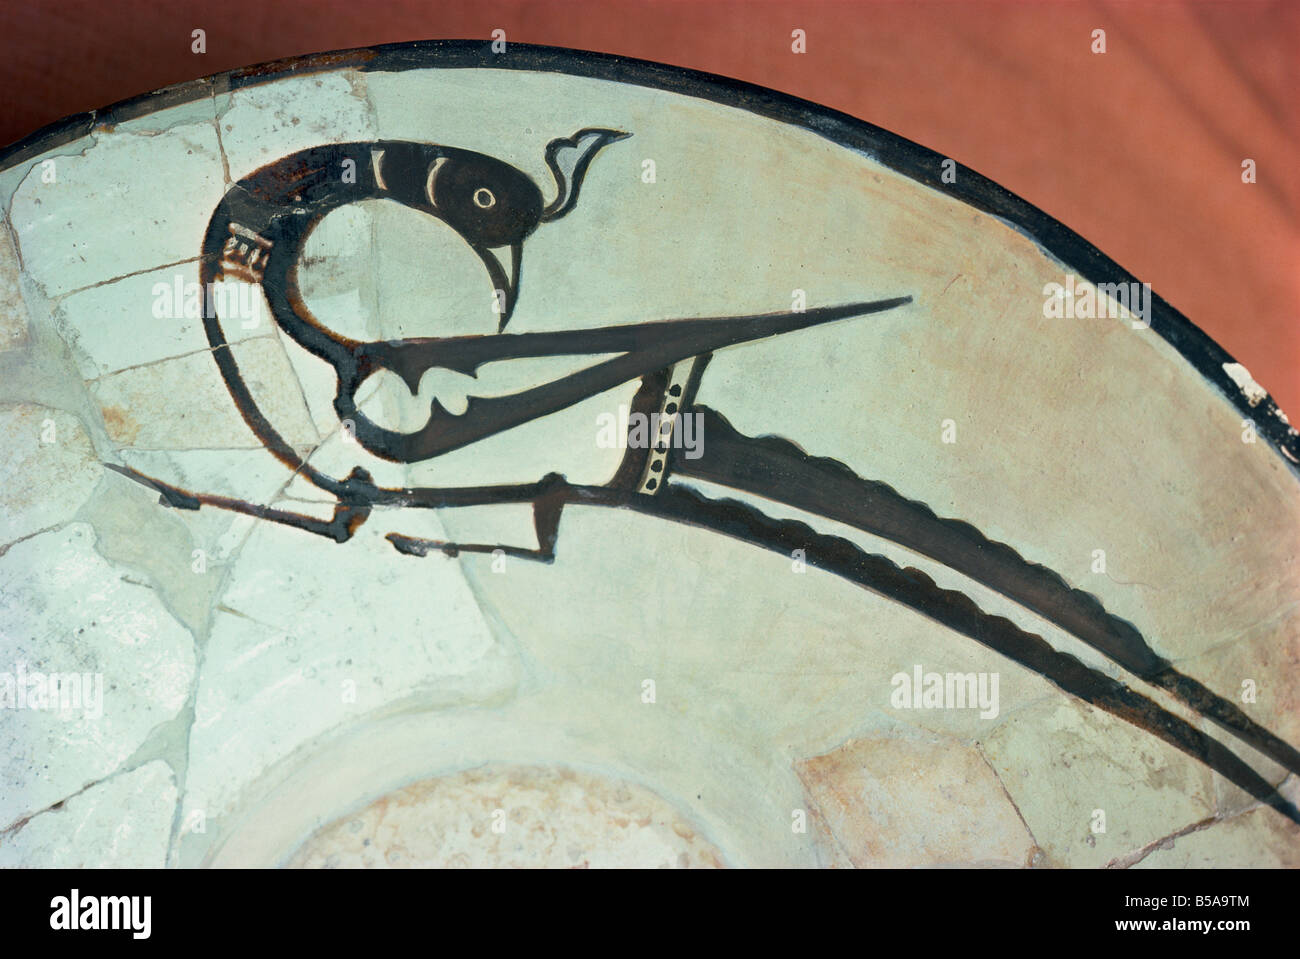 Exhibit in Archaeology Museum Teheran Iran Middle East - Stock Image